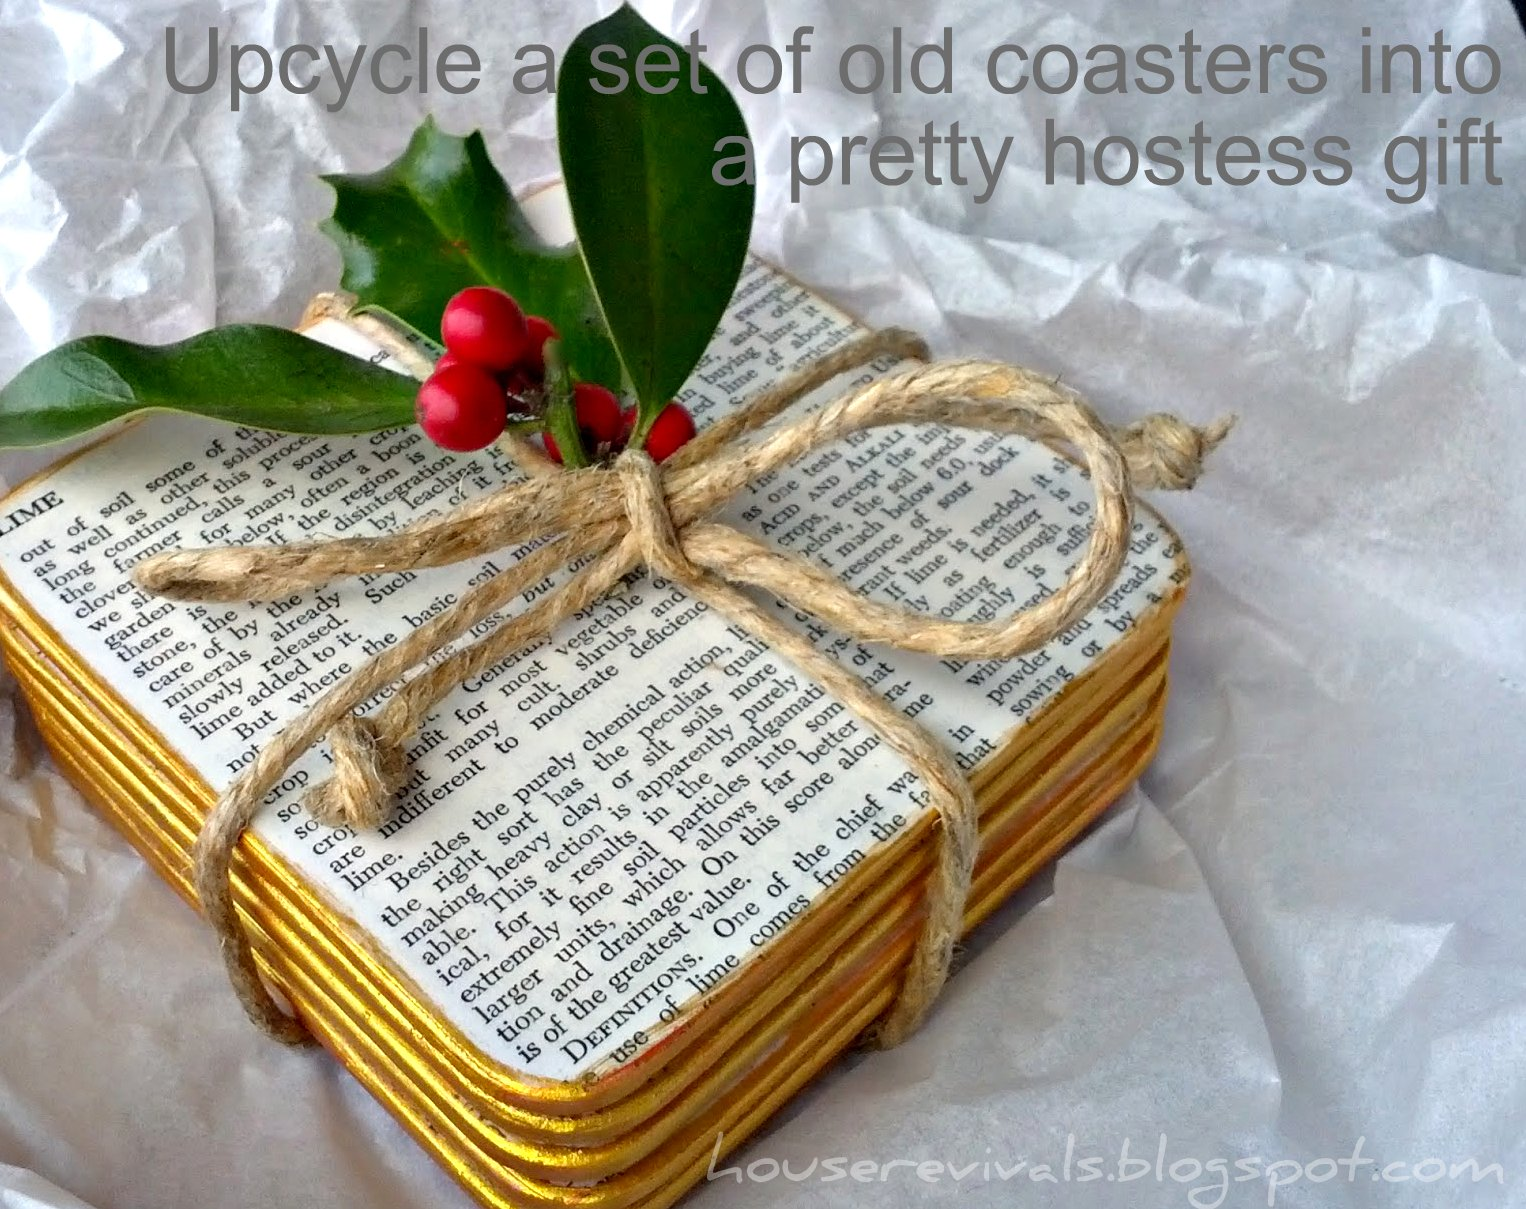 House Revivals: Make a Pretty Hostess Gift from Upcycled Coasters